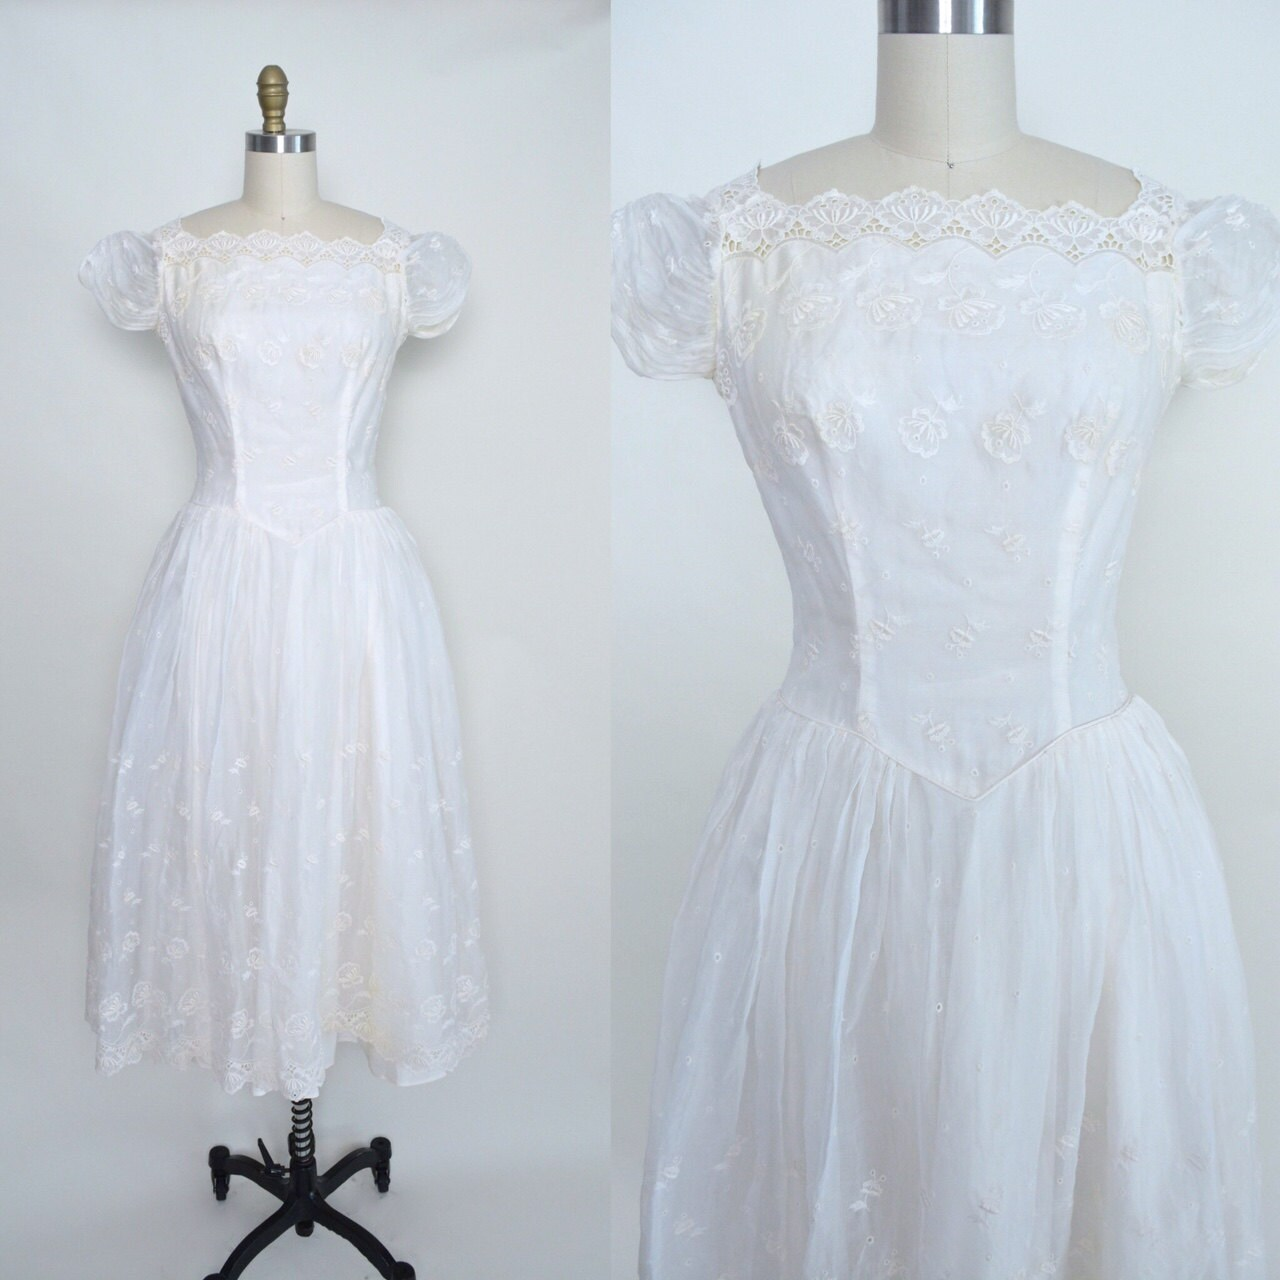 Vintage 1950s Wedding Dress 50s White Bridal Dress Full Skirt